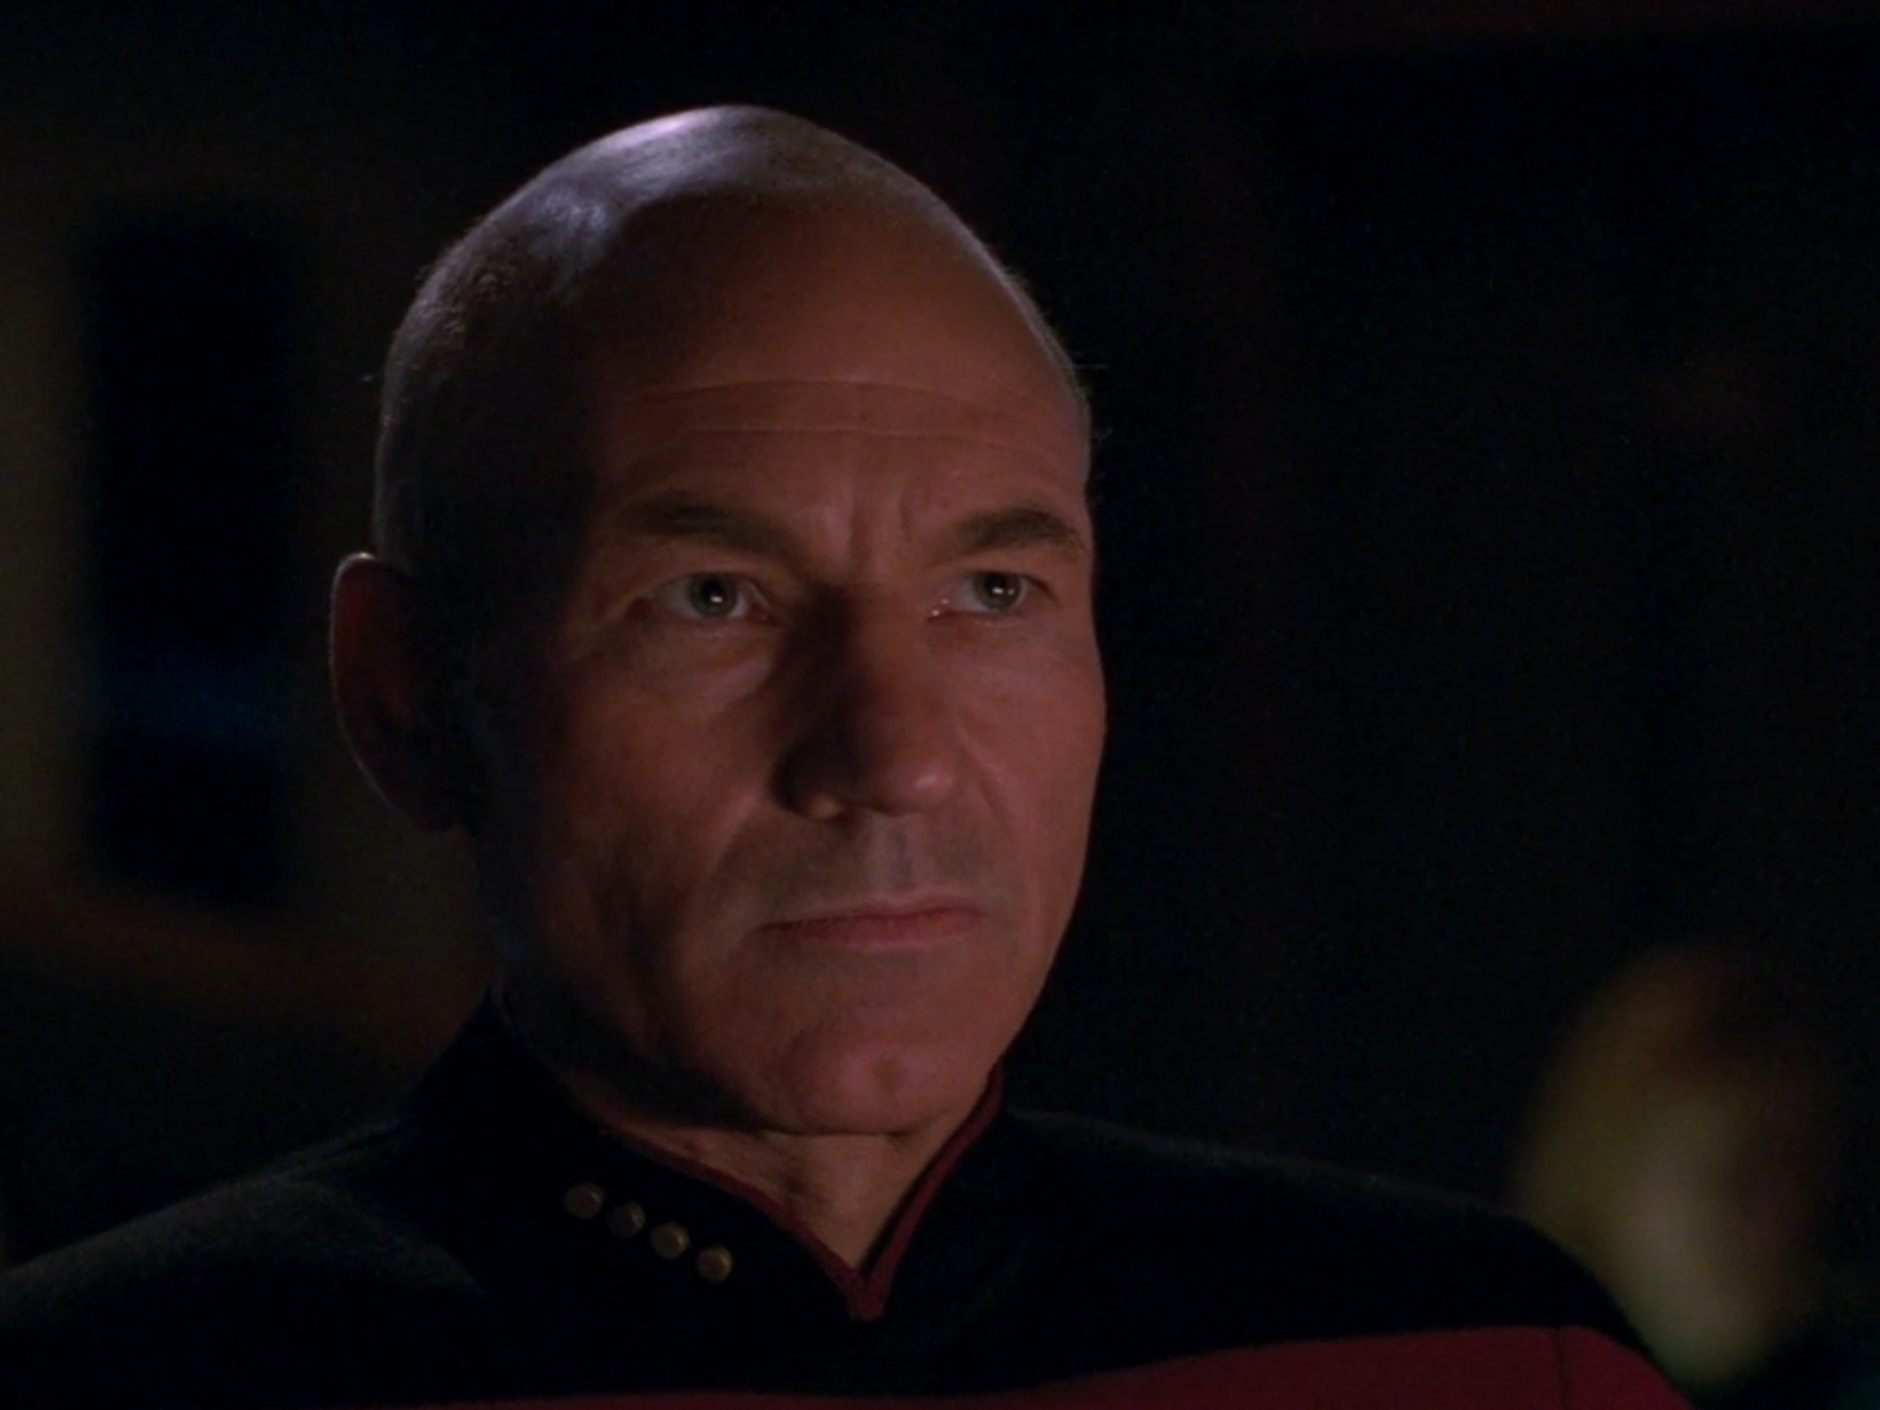 Jean-Luc Picard, Automation, and the Giant Flying Gray Area